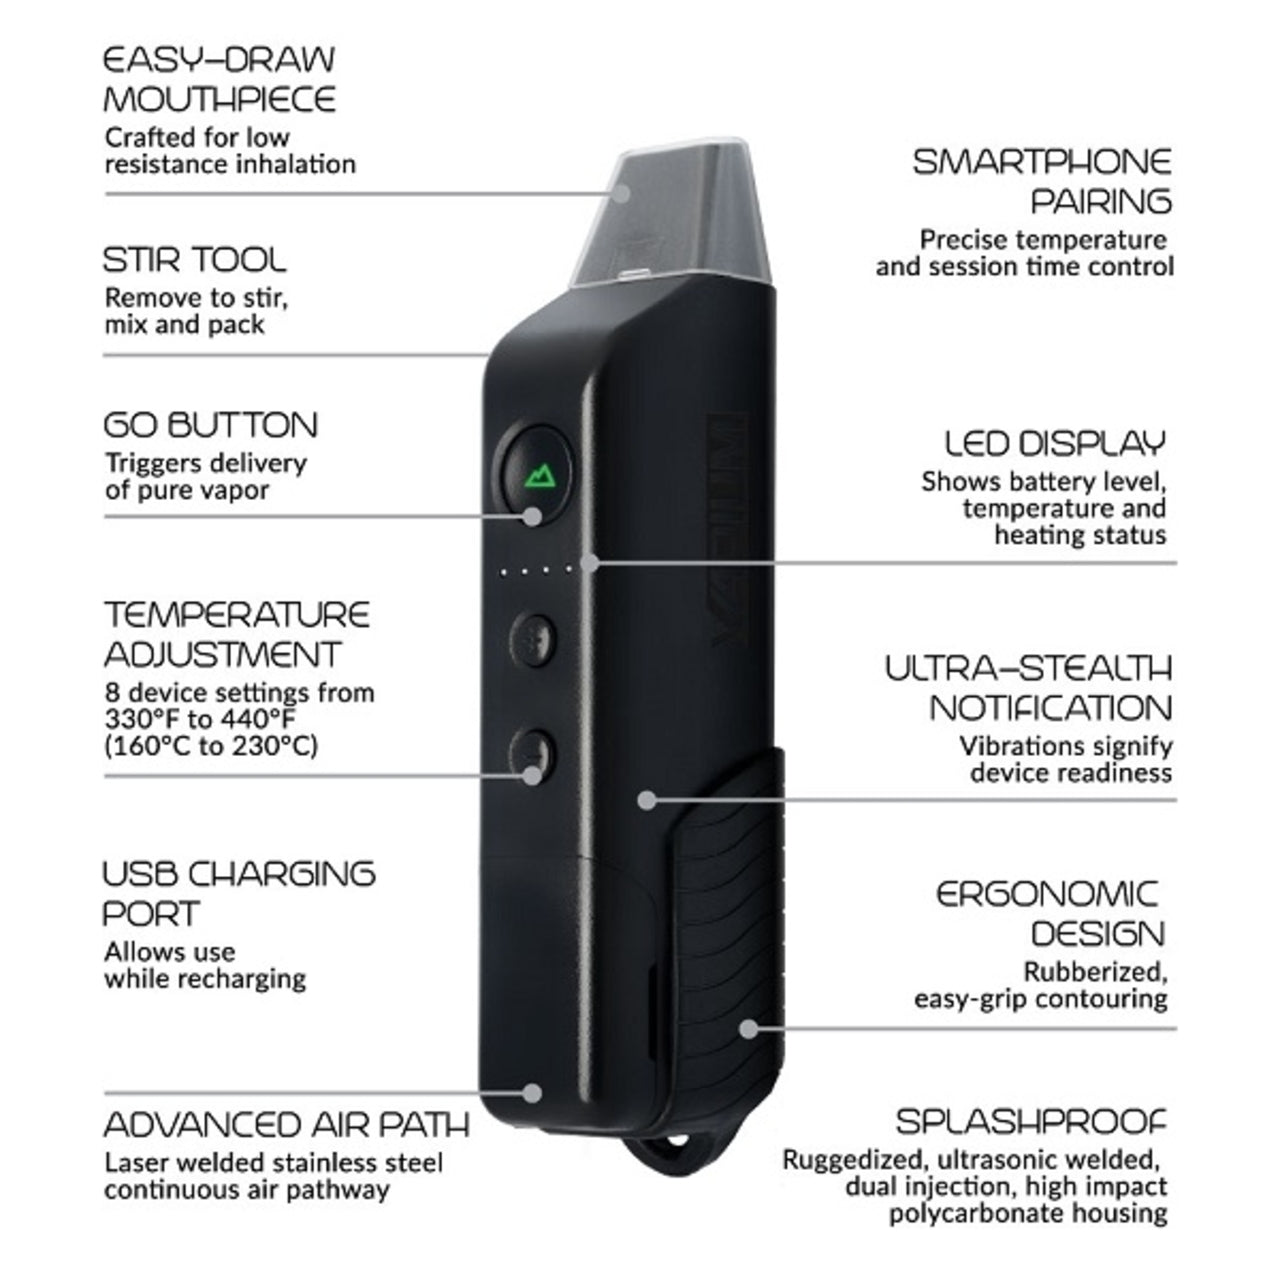 Summit by VAPIUM is a rugged portable dry herb vaporizer that is as powerful as it is easy to use.